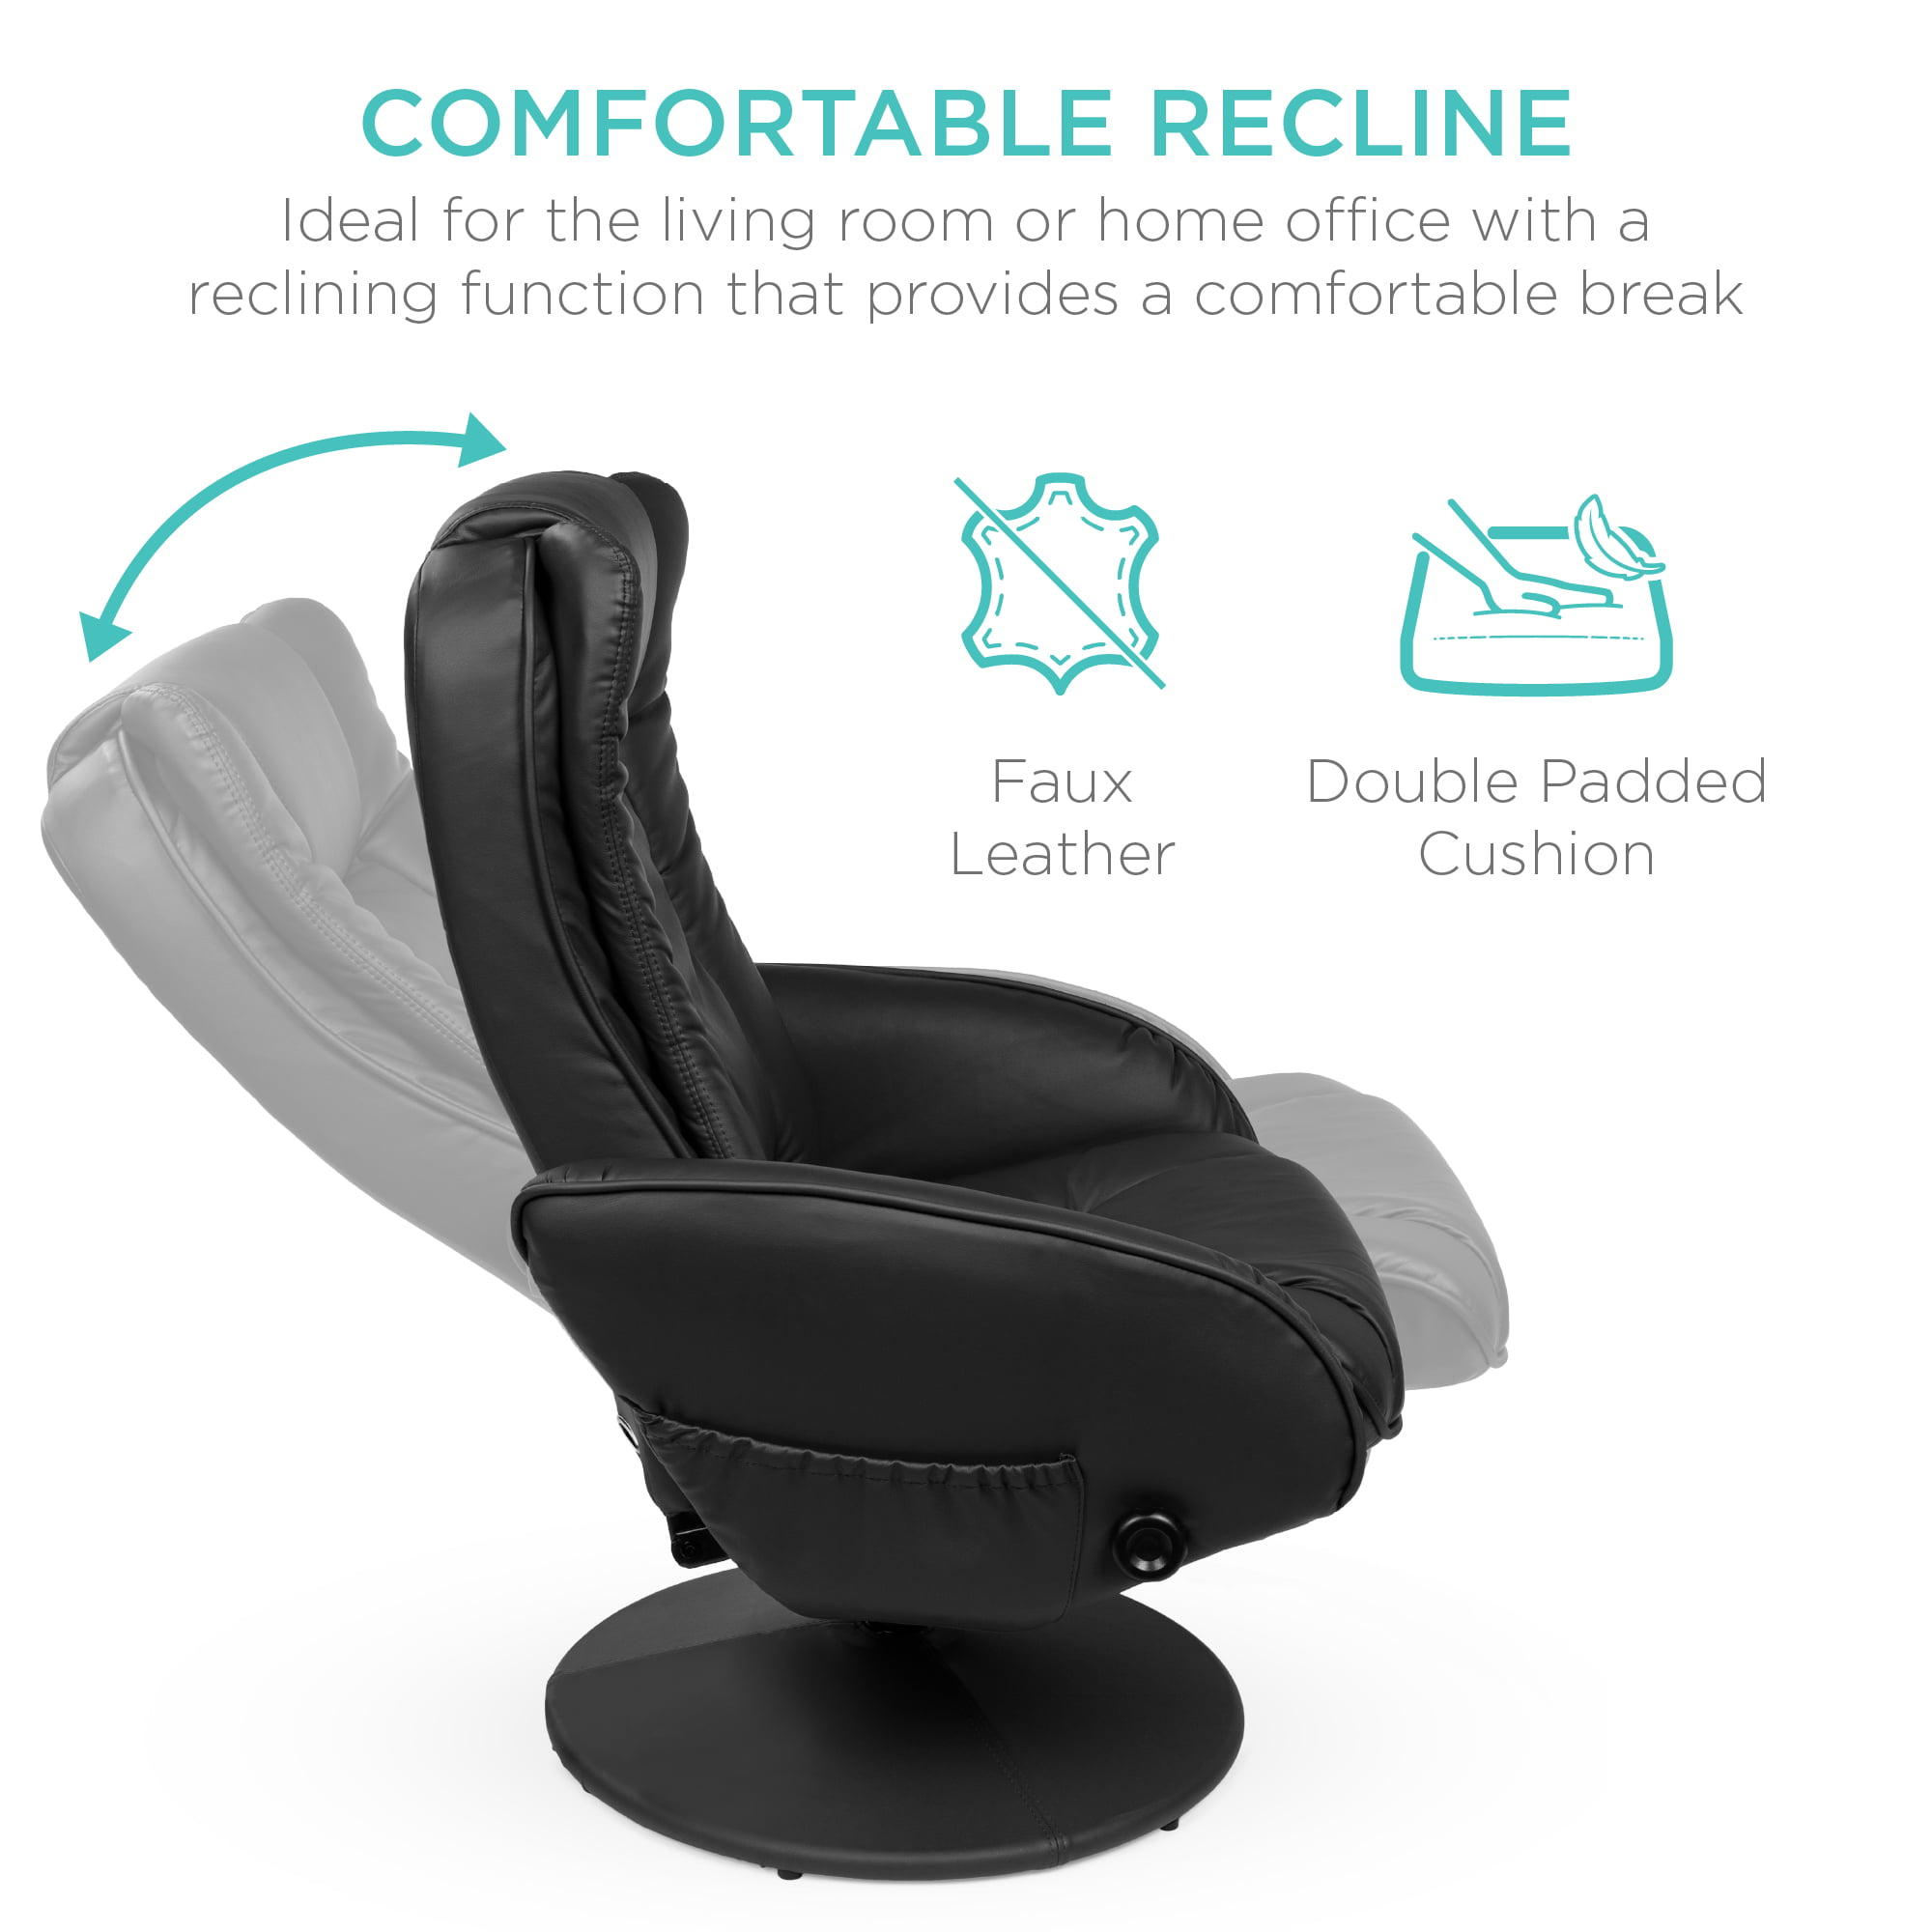 Best Choice Products Faux Leather Electric Massage Recliner Chair w Stool Ottoman, Remote Control, 5 Modes Black